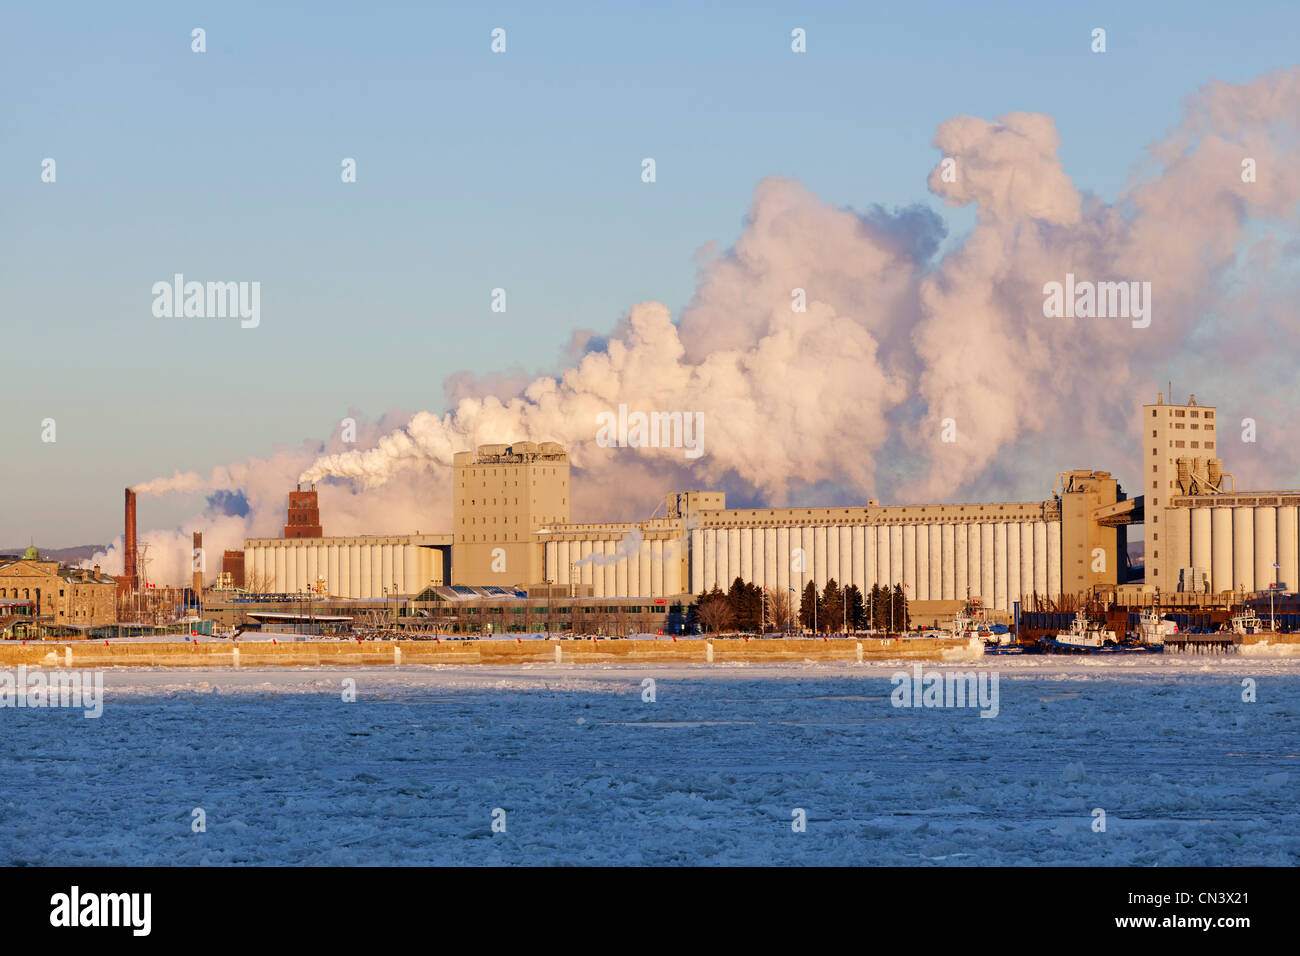 Canada, Quebec province, Quebec, the port and industrial silos, pulp and paper mill - Stock Image